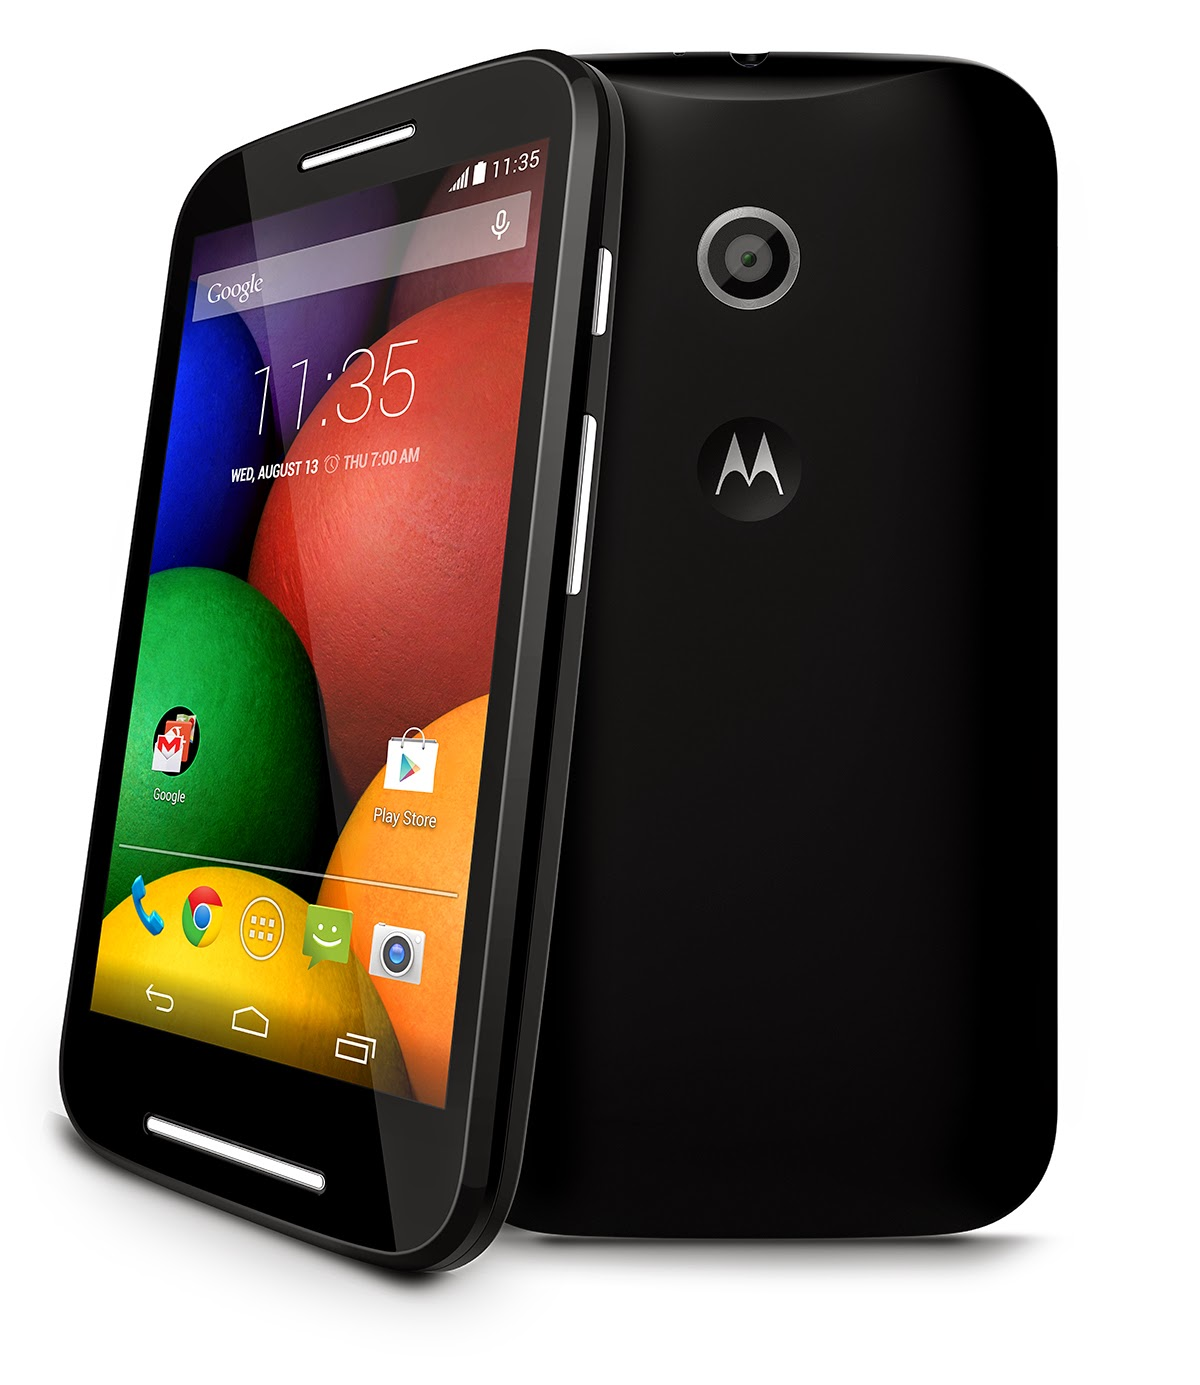 Phone Motorola All Android Phones introducing moto e and g with 4g lte smart phones priced for all